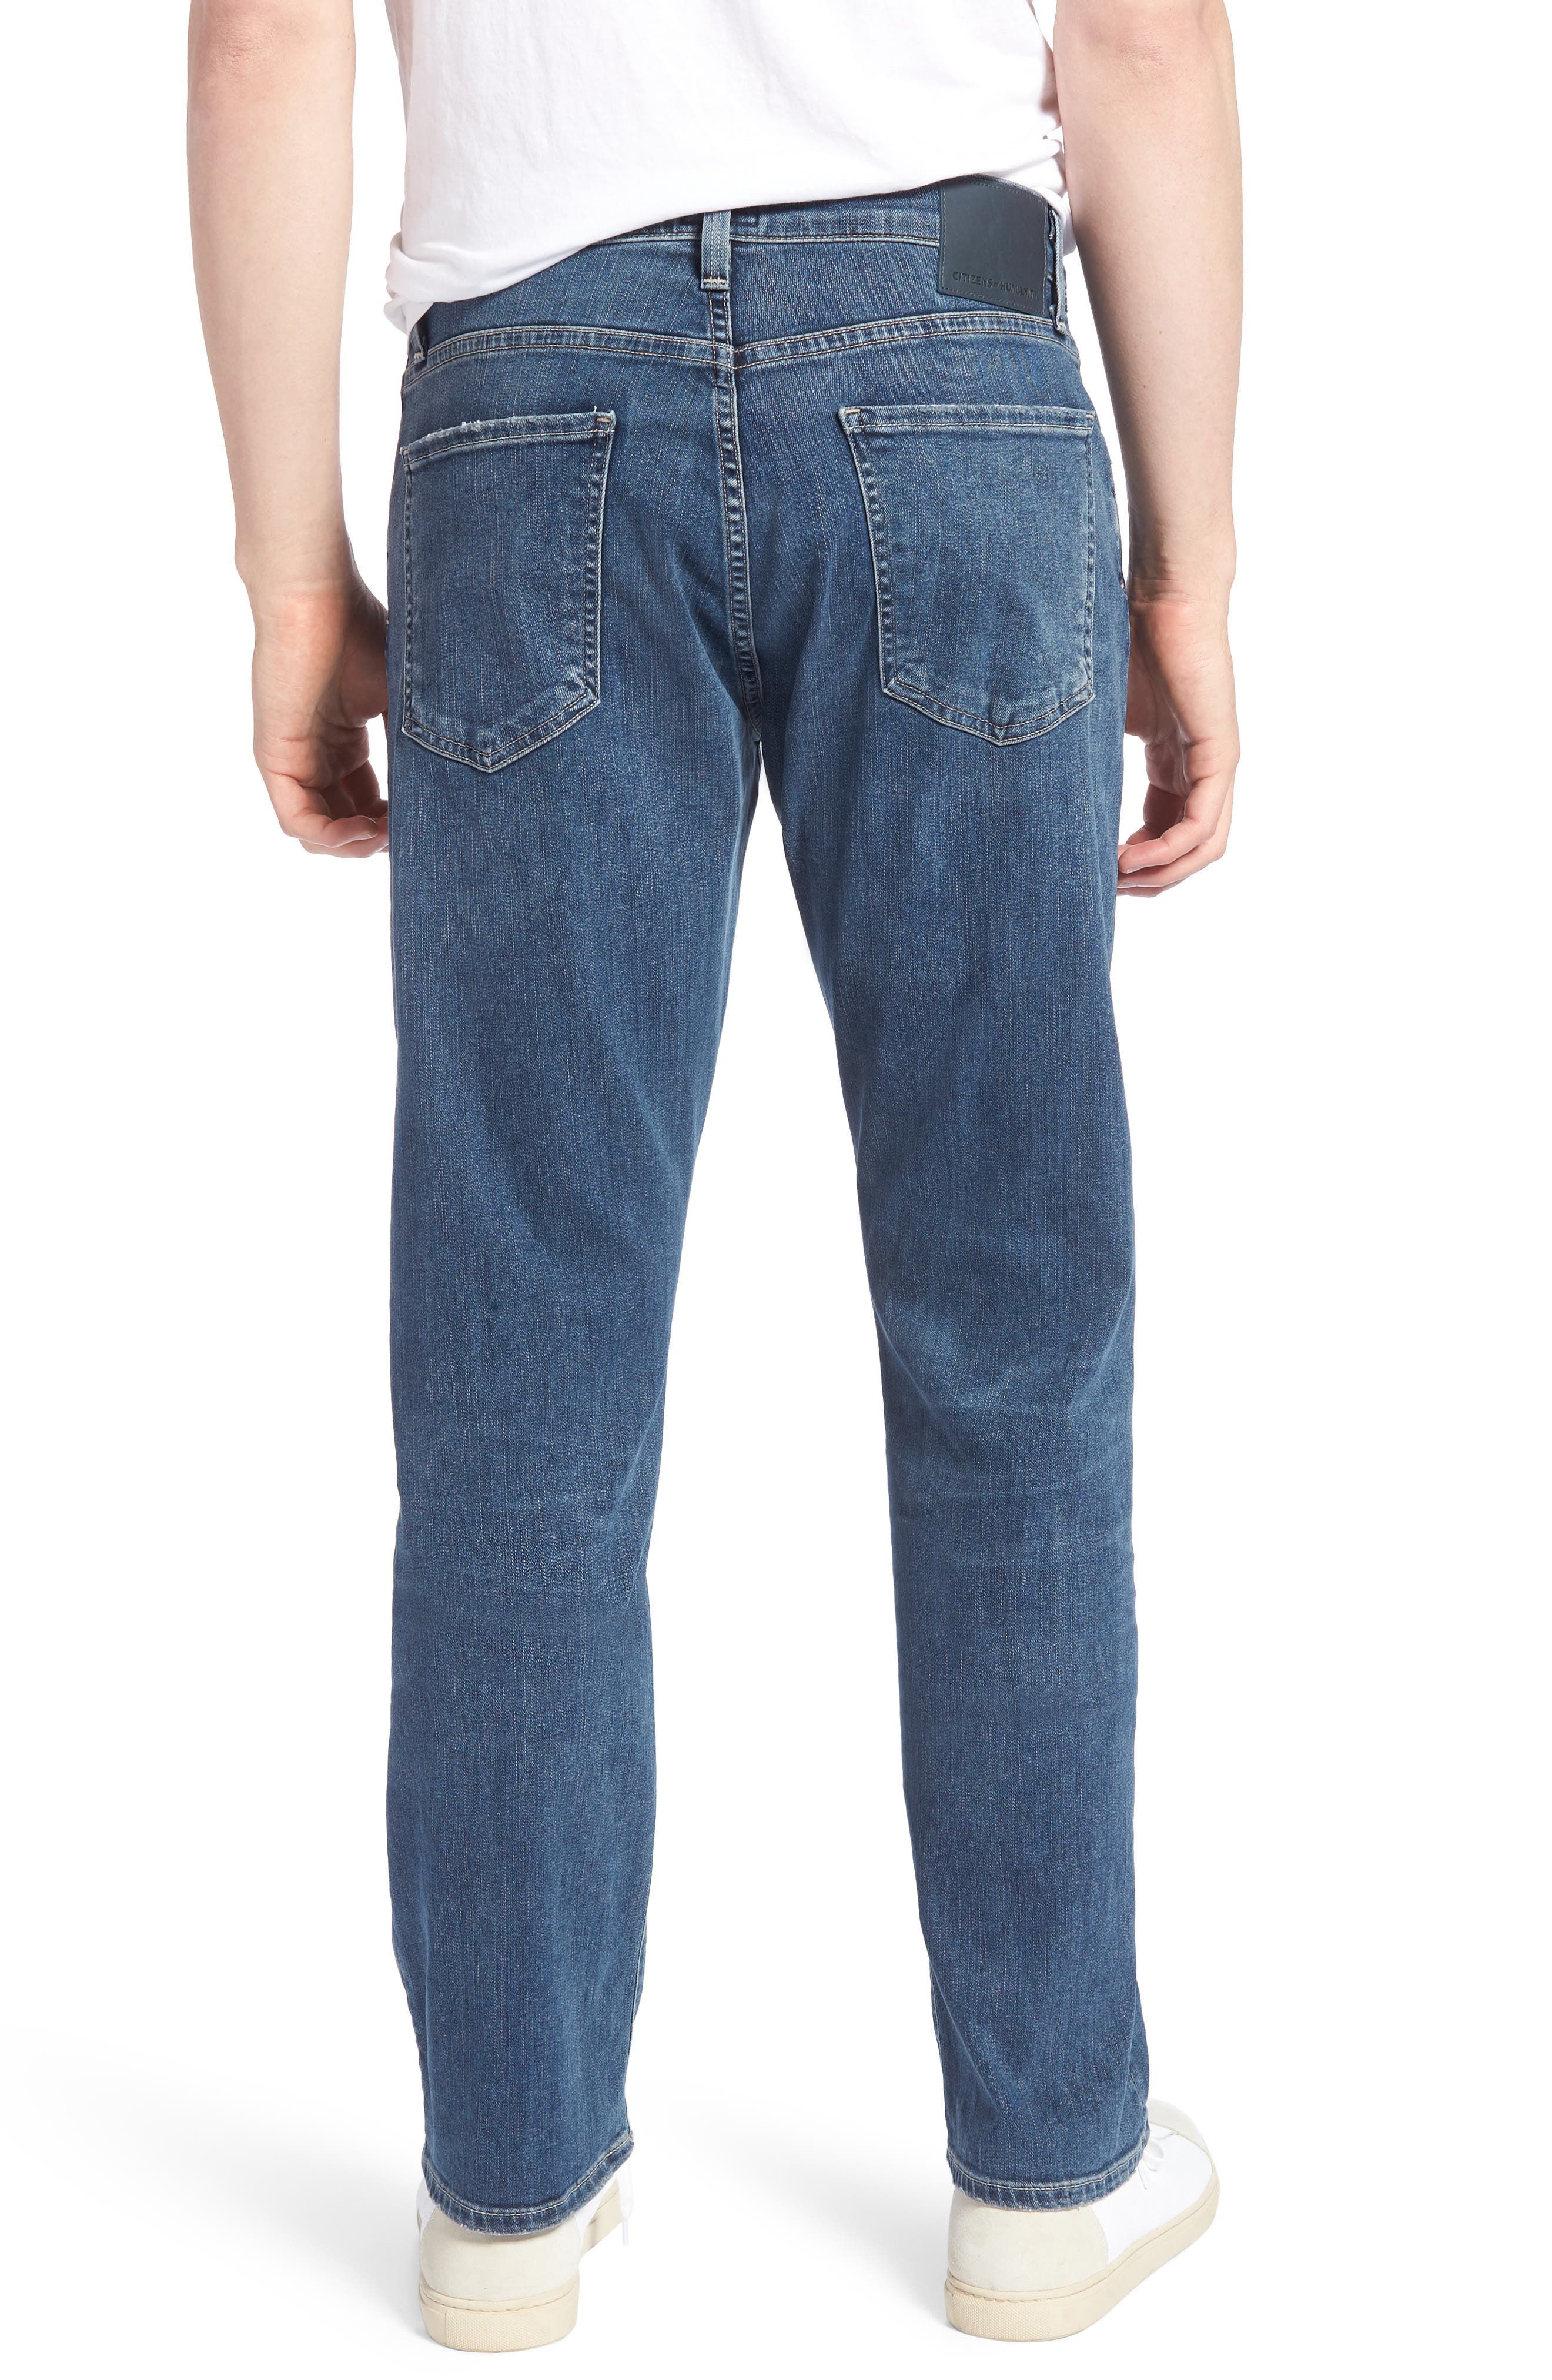 Gage Slim Straight Fit Jeans,                             Alternate thumbnail 2, color,                             Taylor